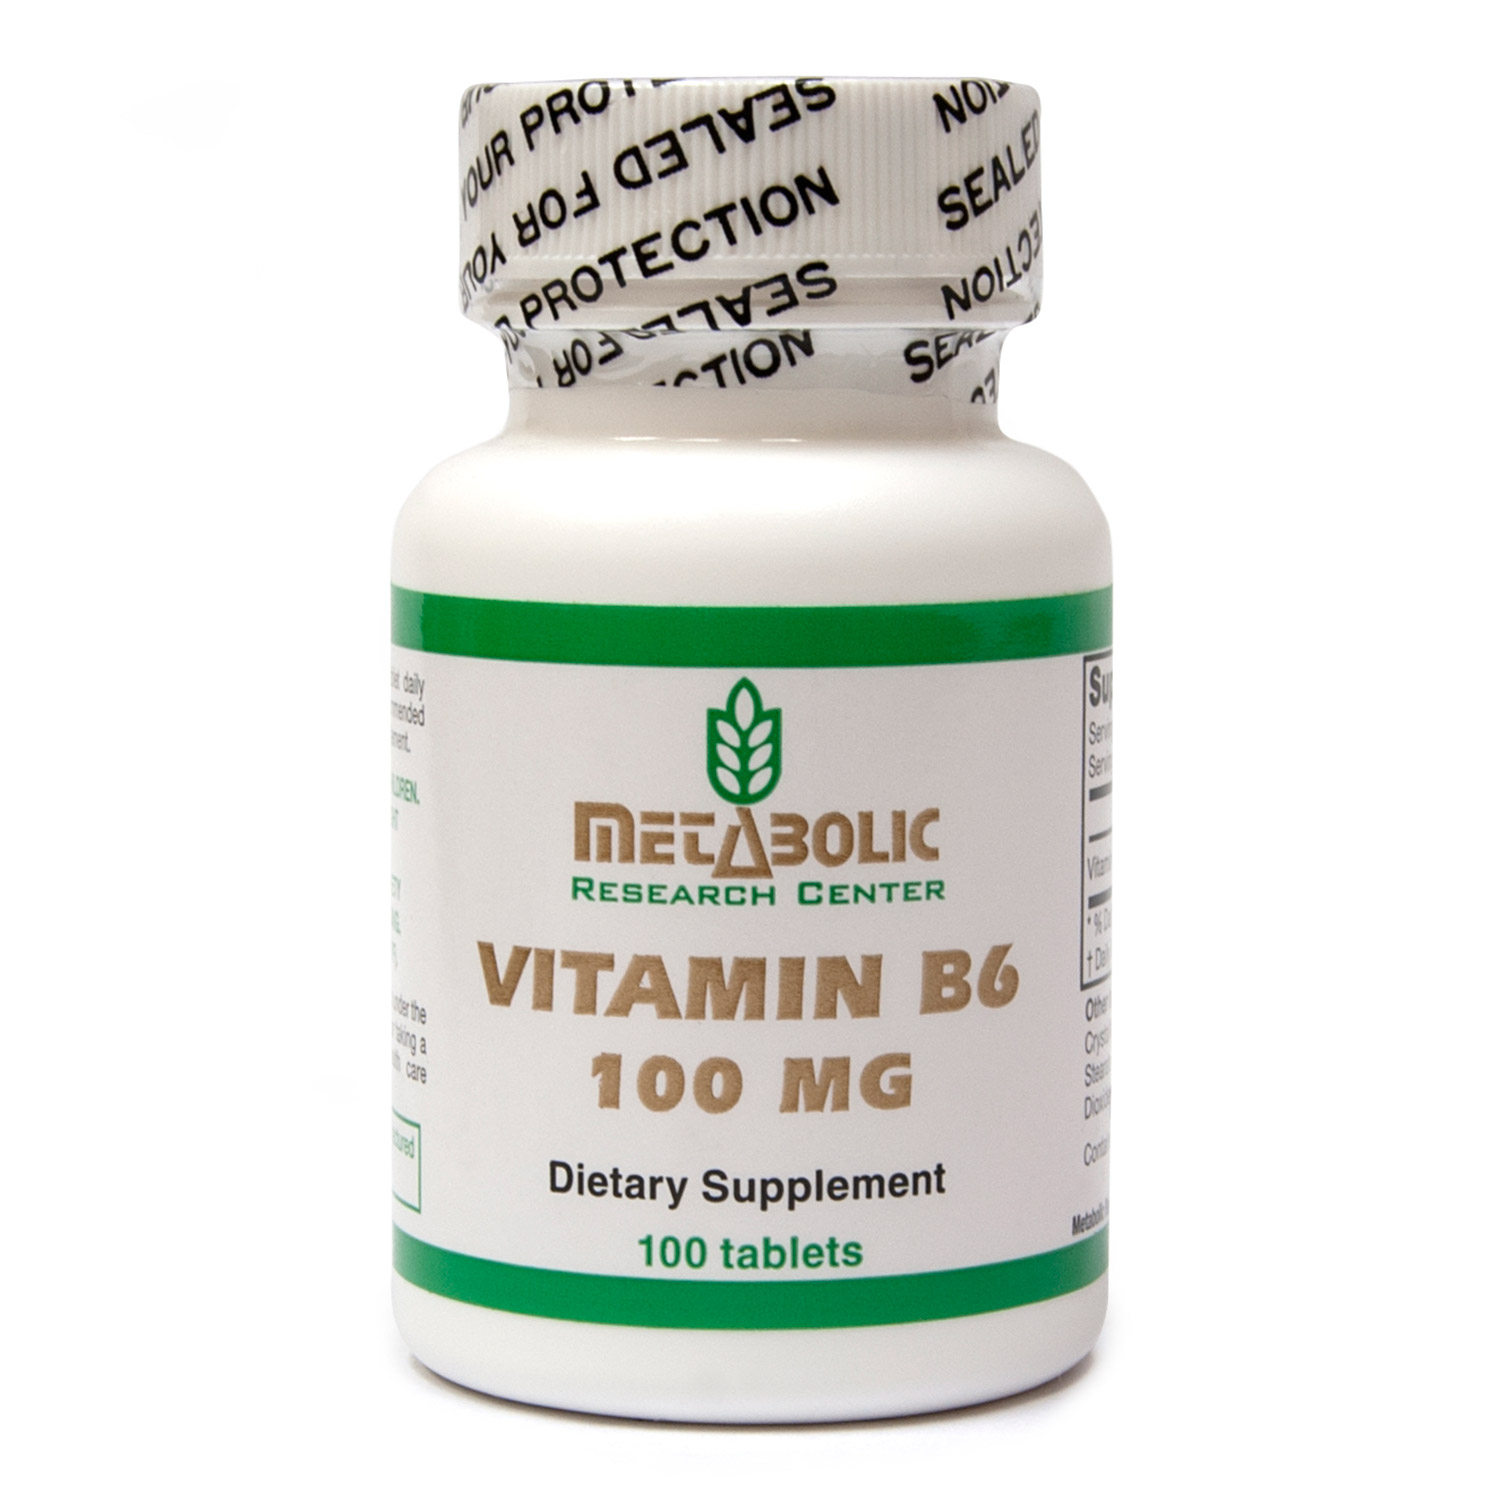 Vitamin B6 by Metabolic Research Center, Dietary Supplement, 100 count